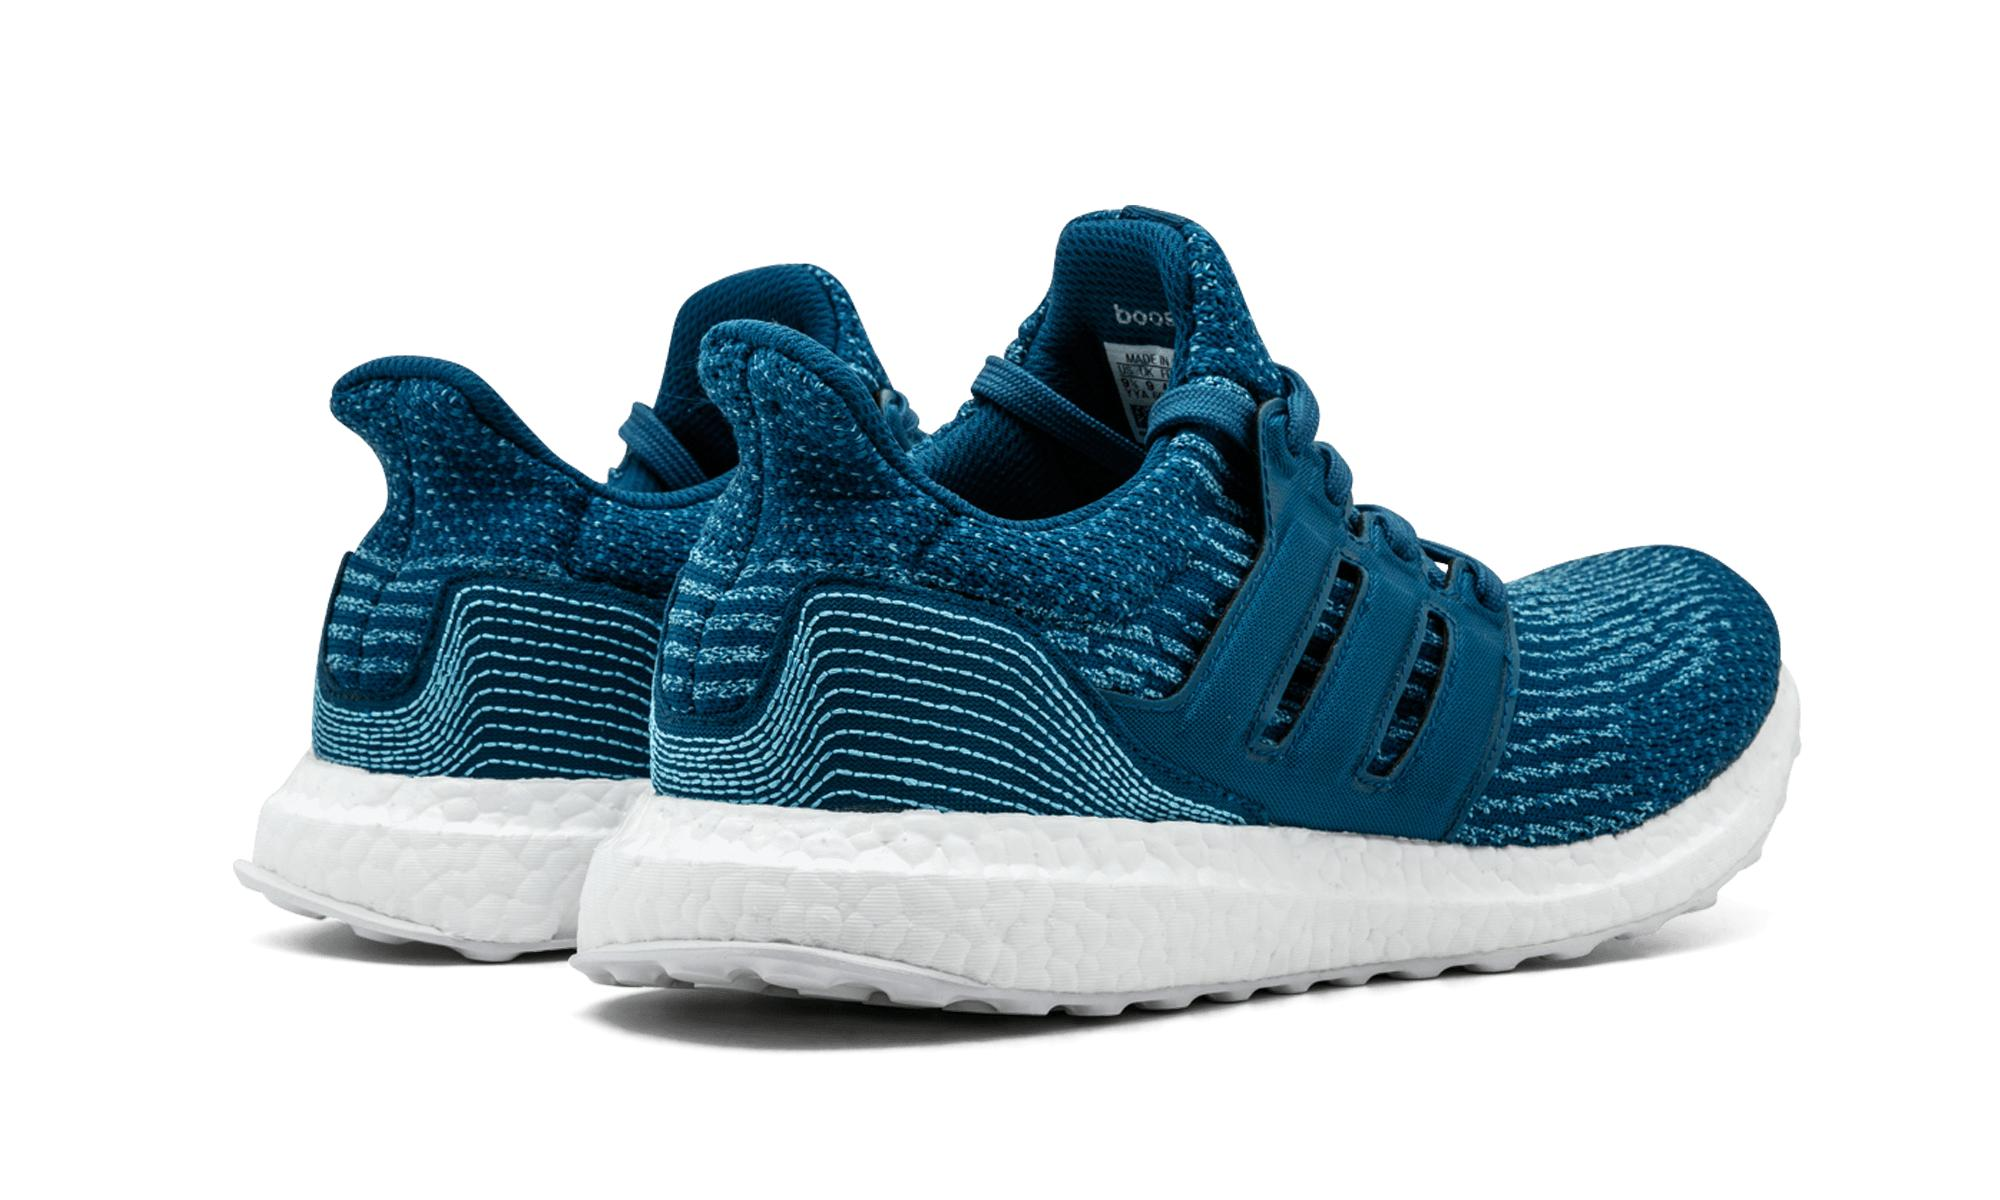 ADIDAS ULTRA BOOST PARLEY OCEAN M 3.0 BLUE NIGHT CORE VAPOUR